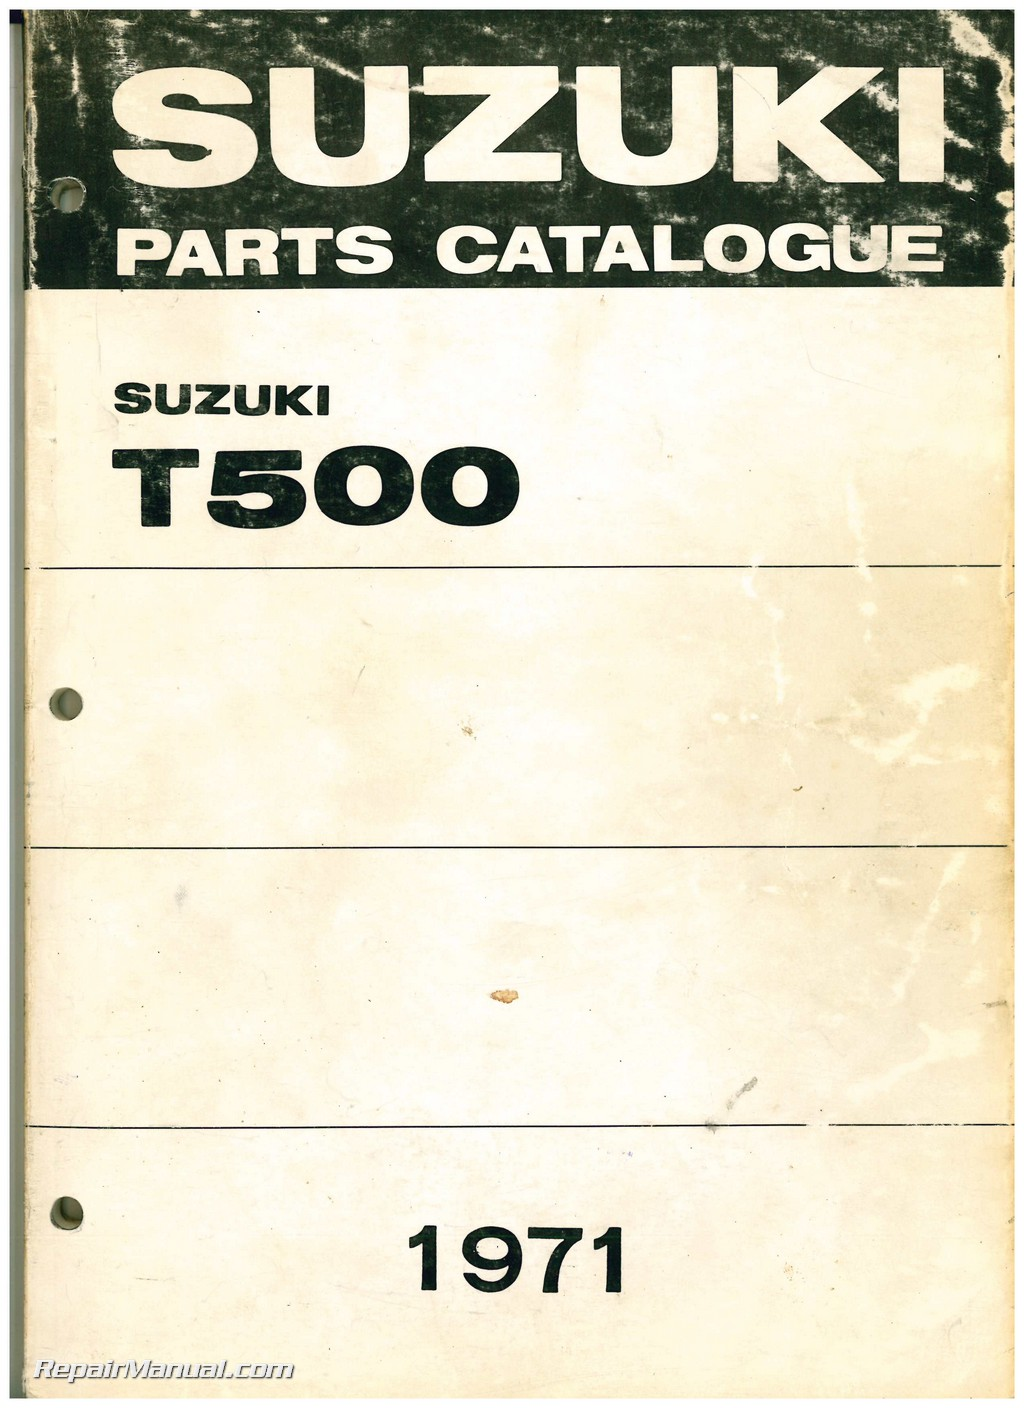 suzuki gt750 wiring diagram suzuki t500 parts hobbiesxstyle suzuki rv90 wiring diagram